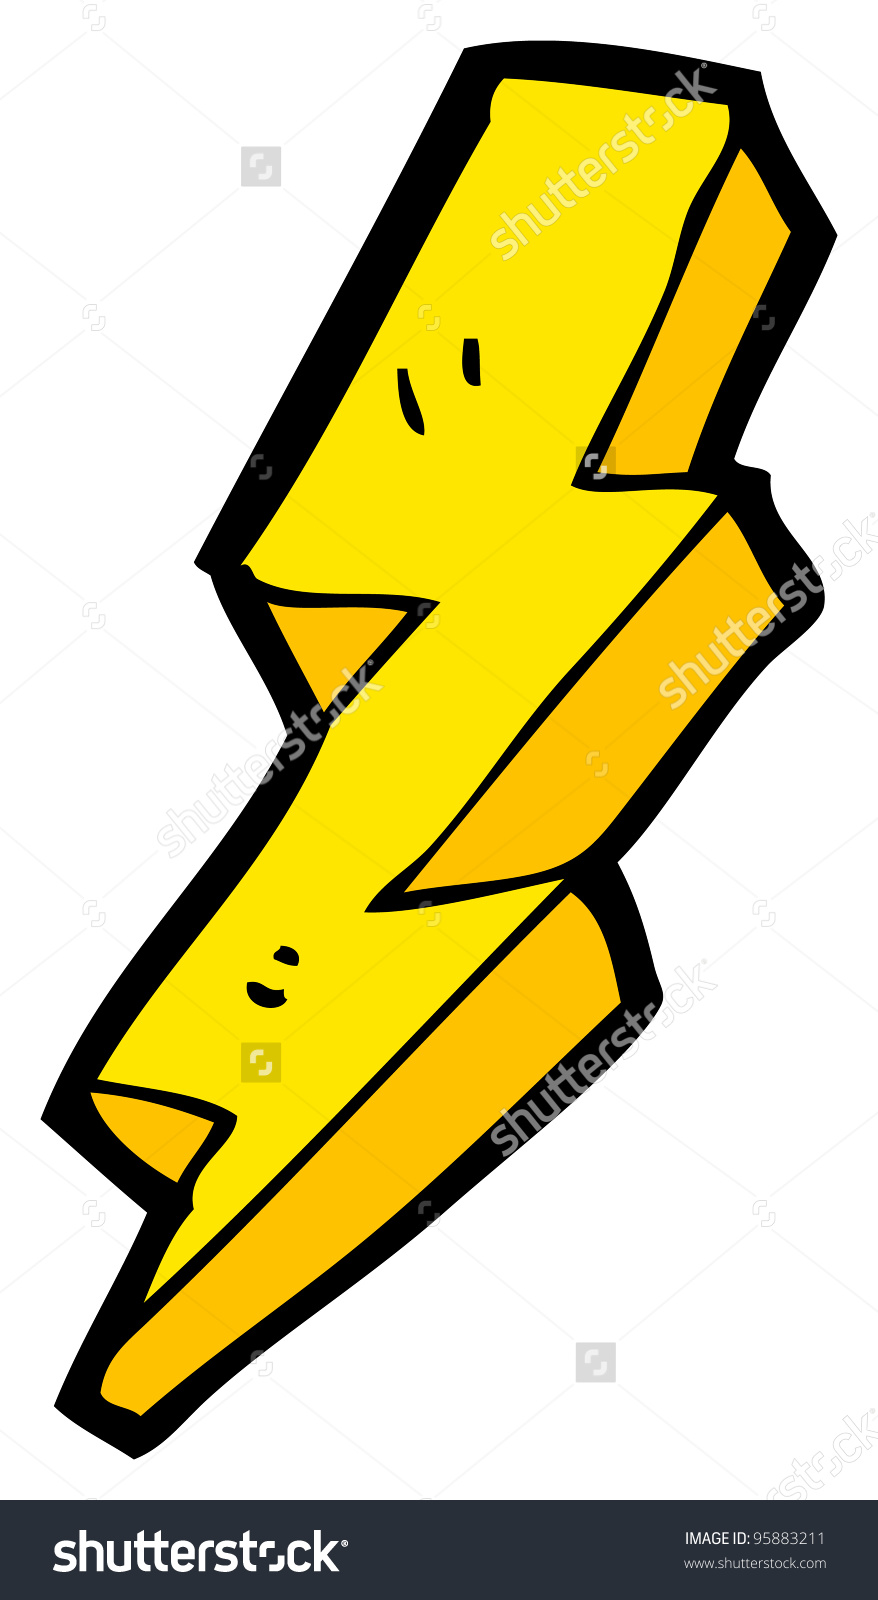 878x1600 Cartoon Lightning Bolt Lightning Bolt Clipart, Explore Pictures